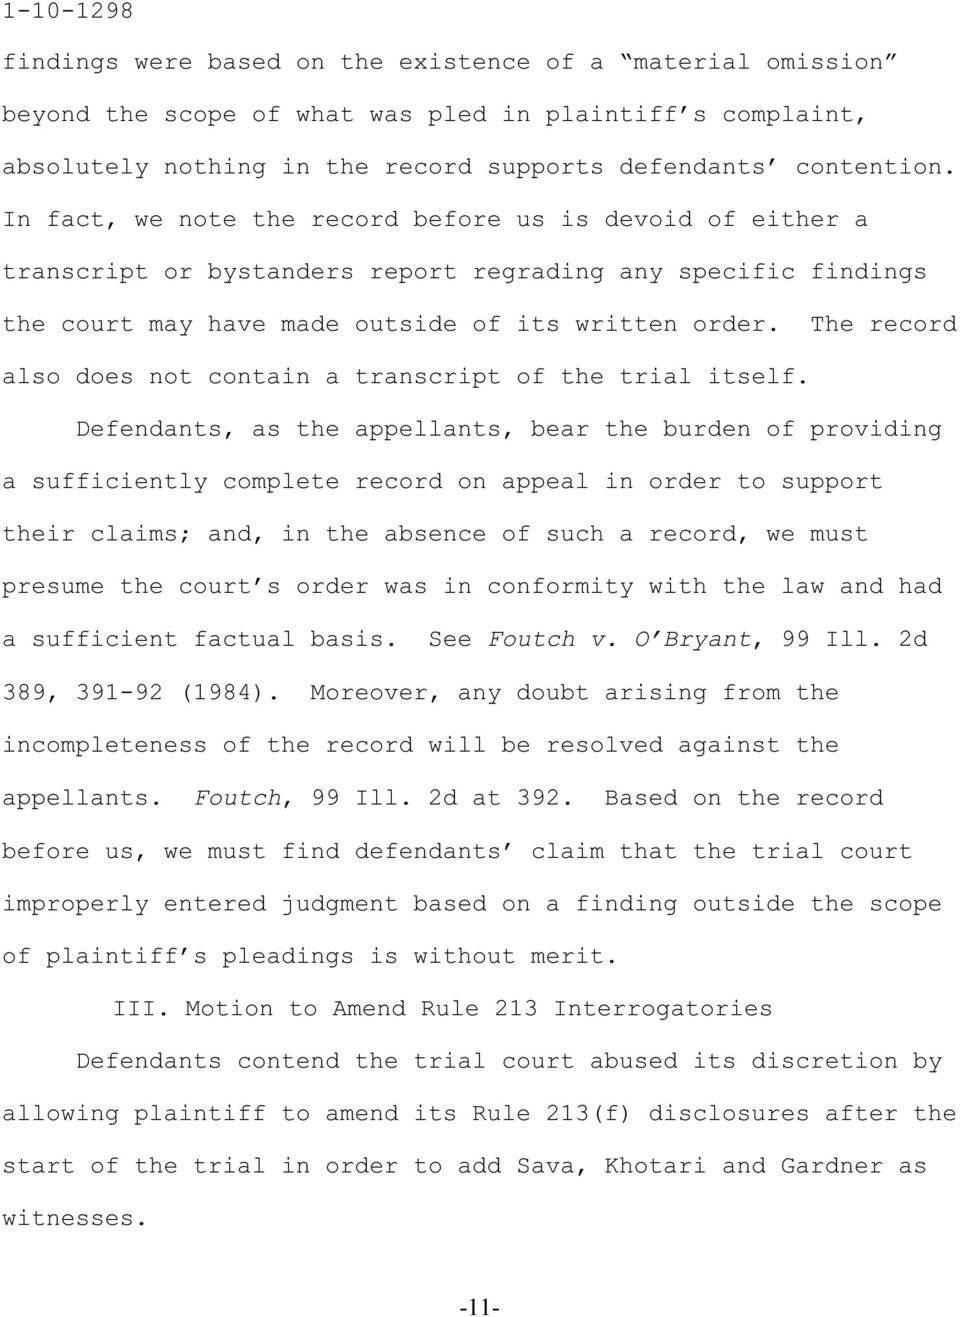 The record also does not contain a transcript of the trial itself.